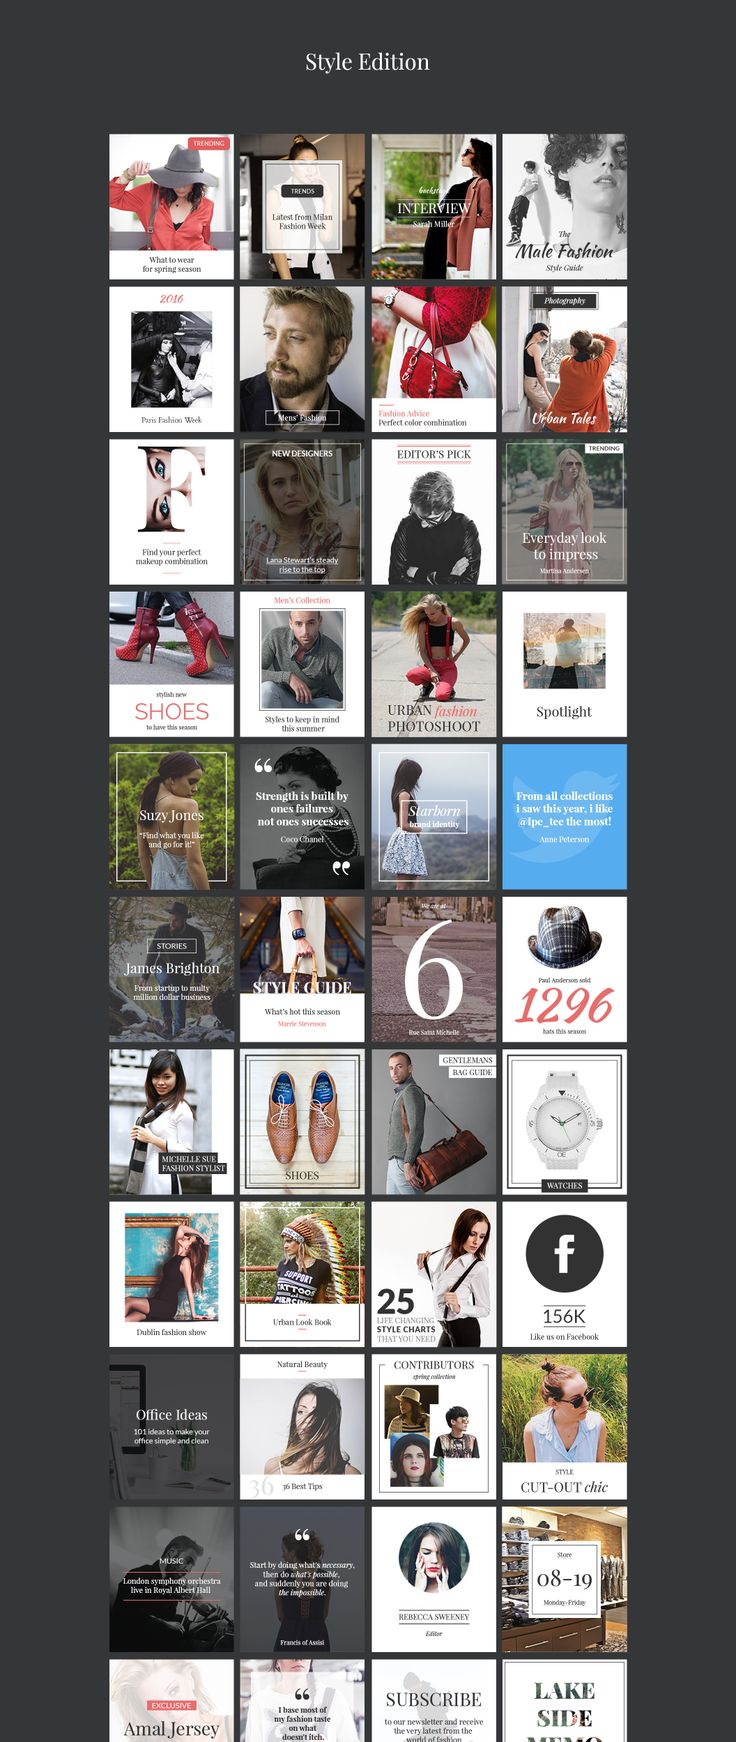 Stylish banners for websites, blogs, apps & social media